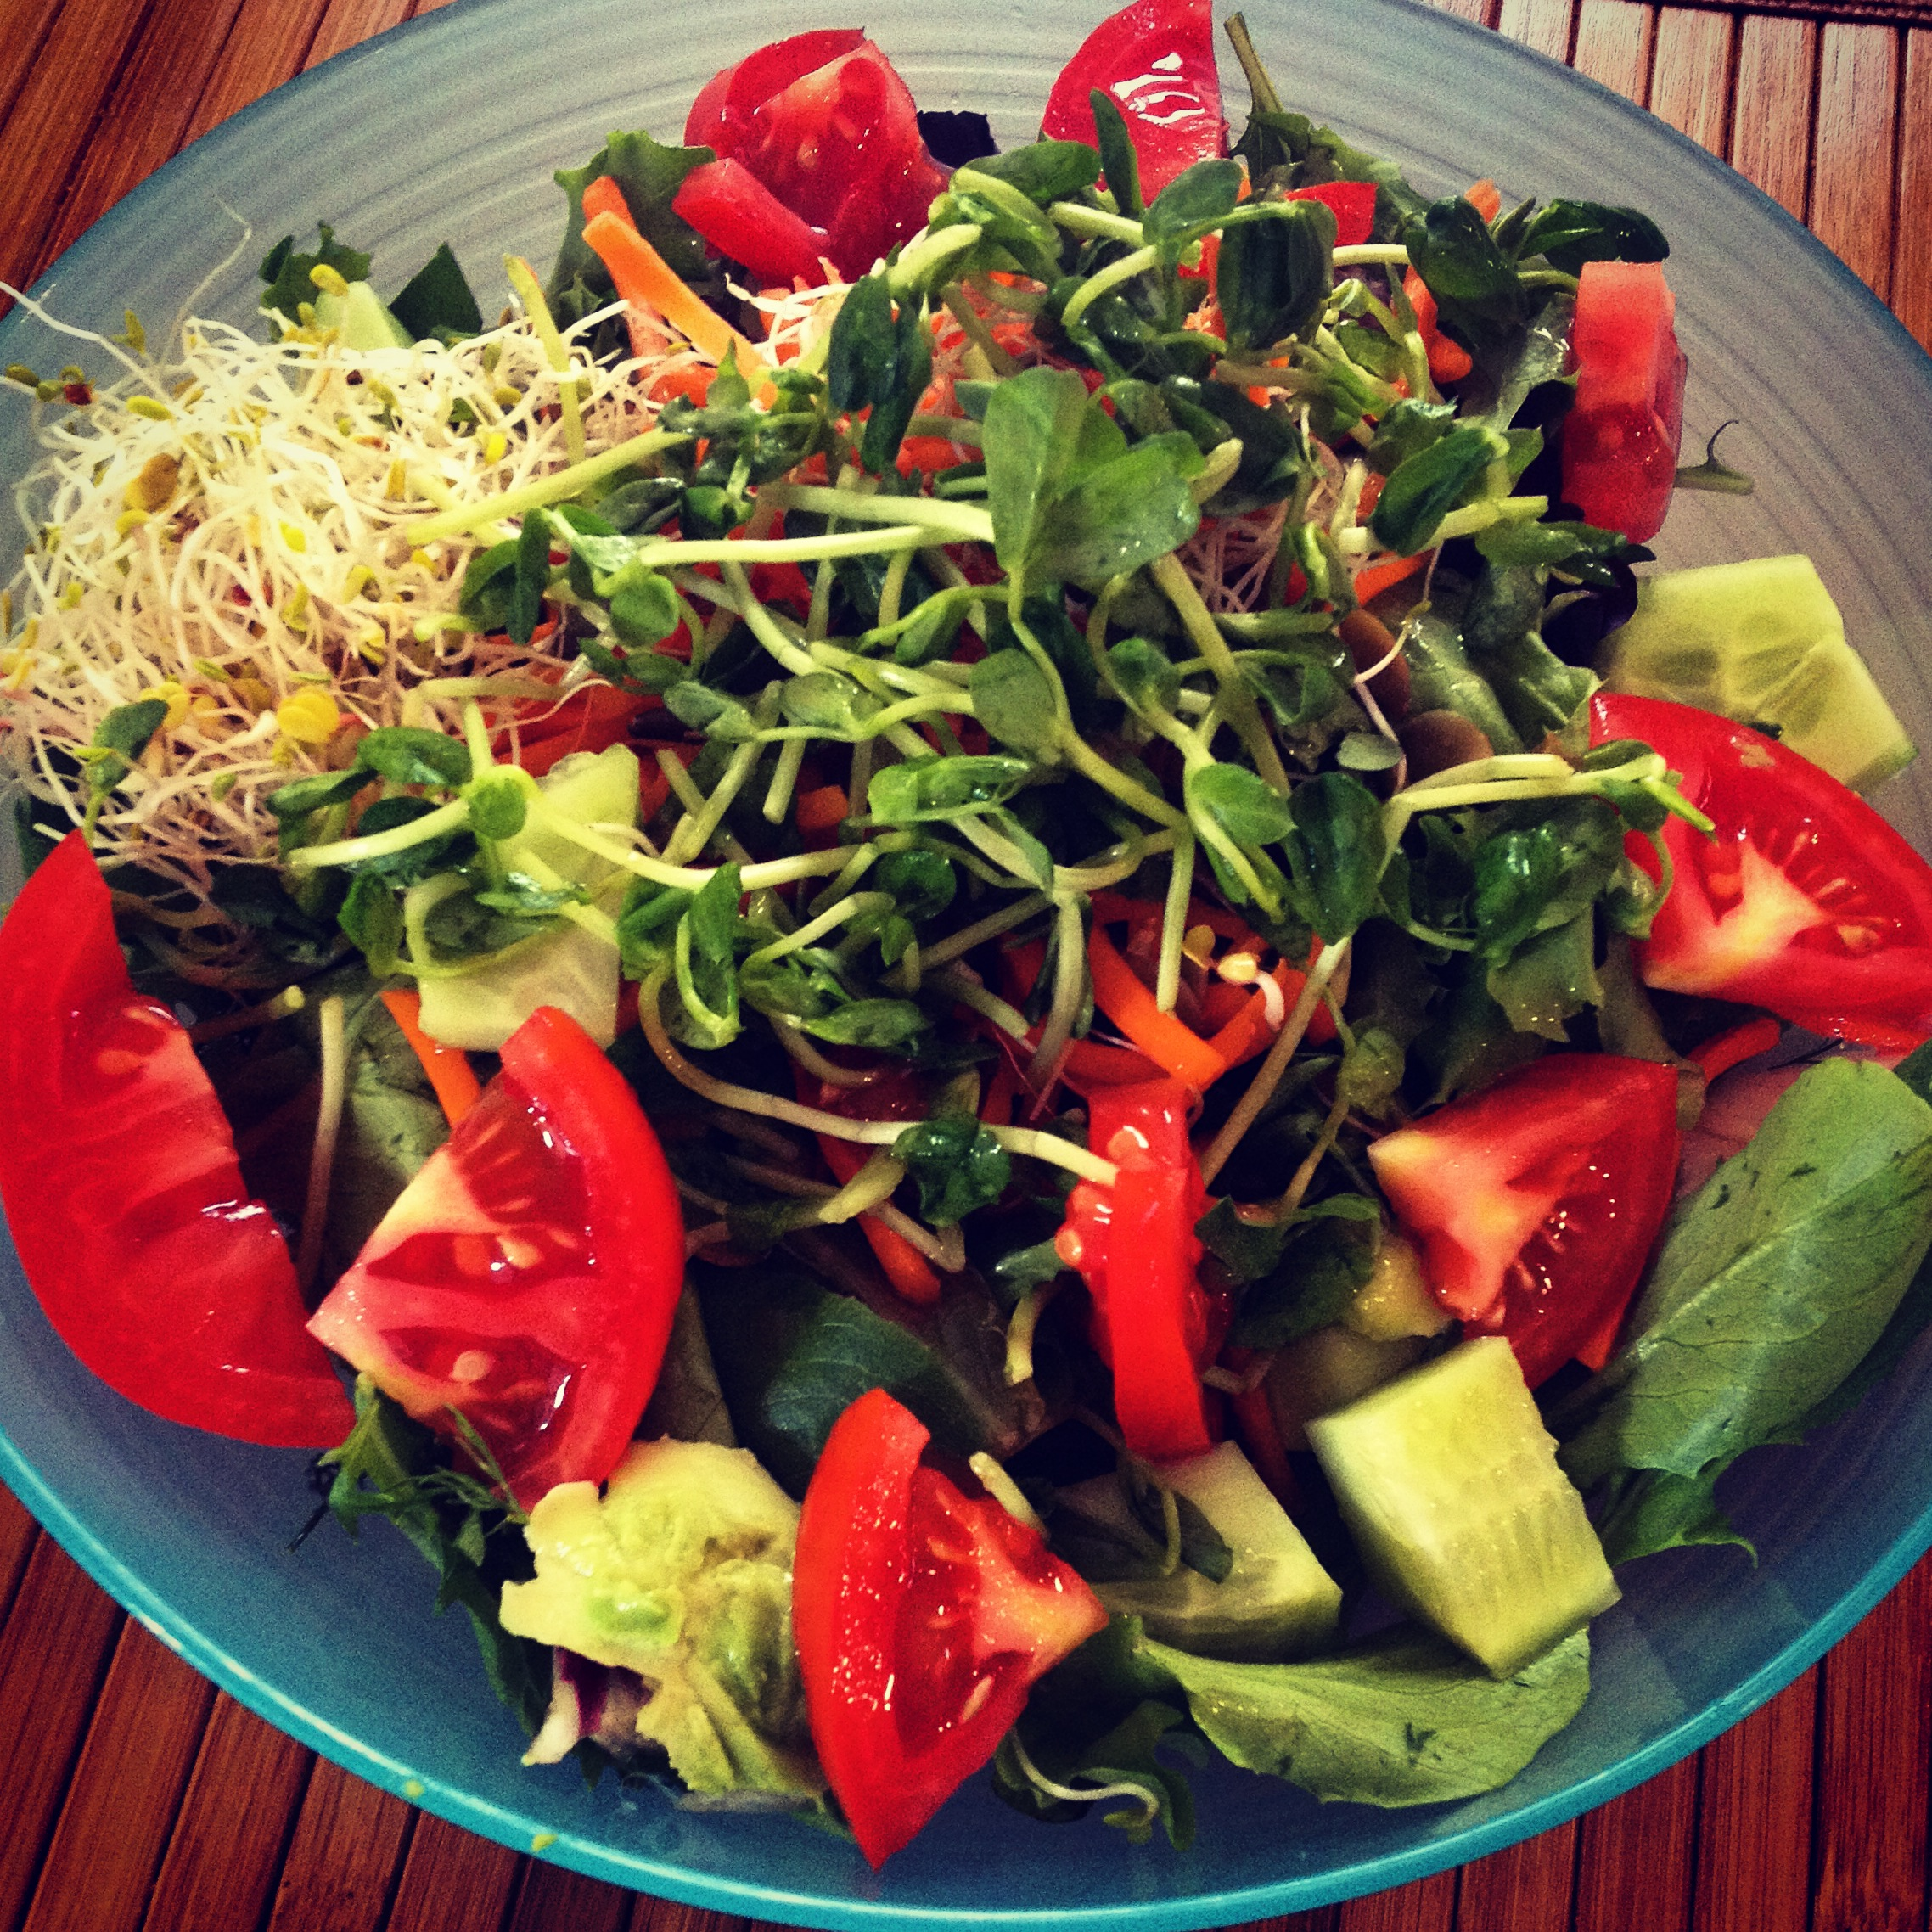 """A variety of sprouts, including my favorite """"Sunnies"""" front and center, spice up this everyday salad."""